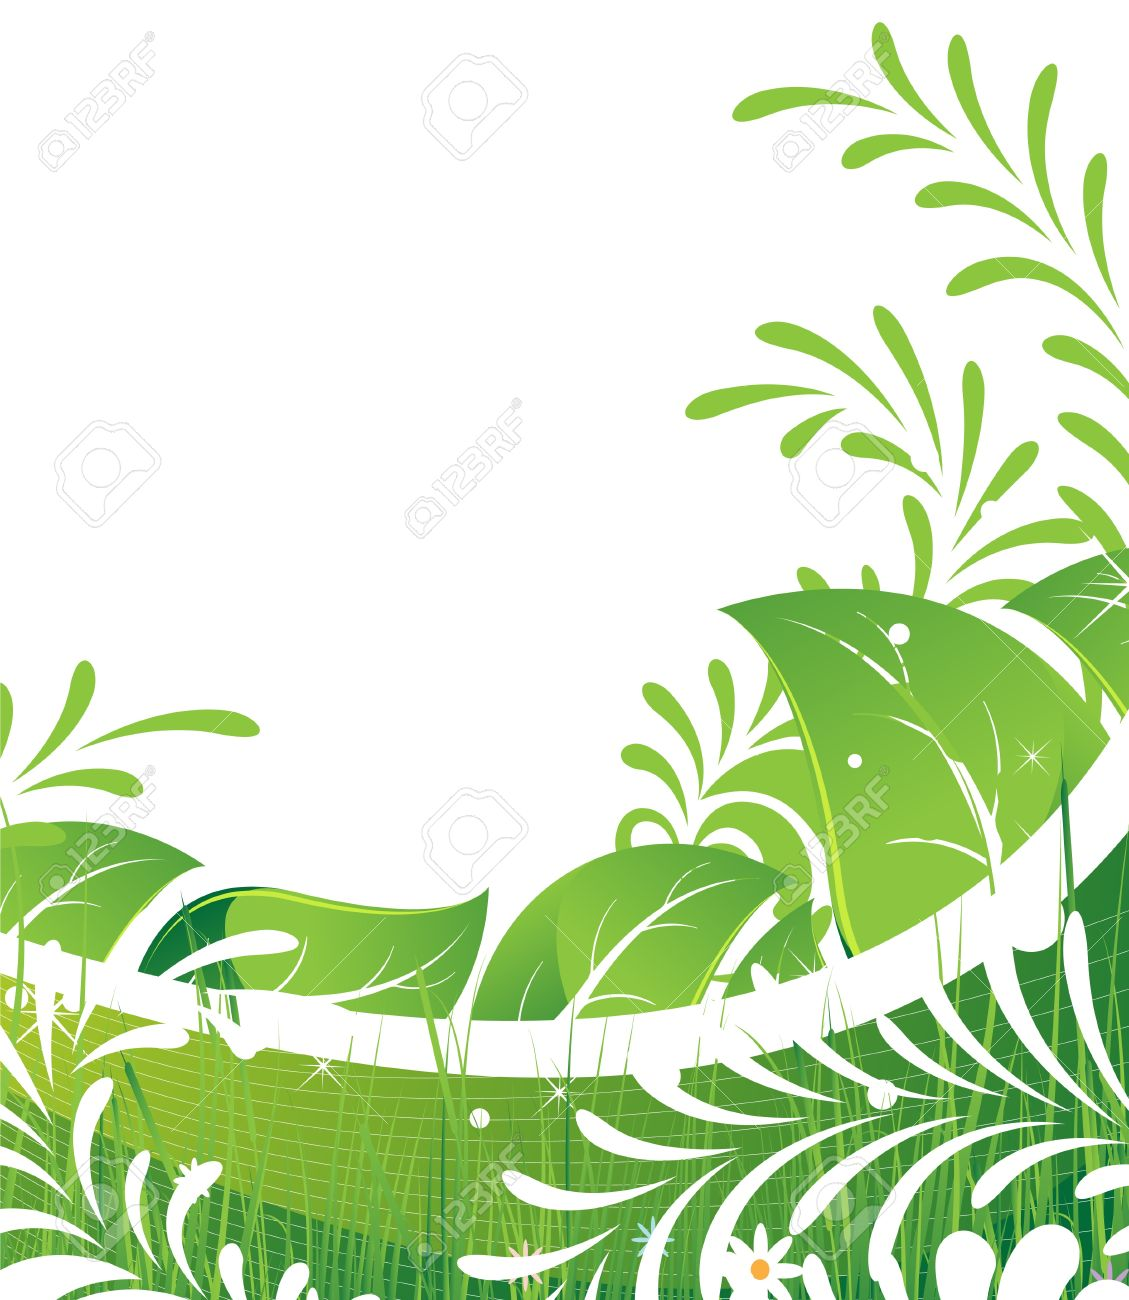 Abstract foliage and flowers on a white background - 14537014